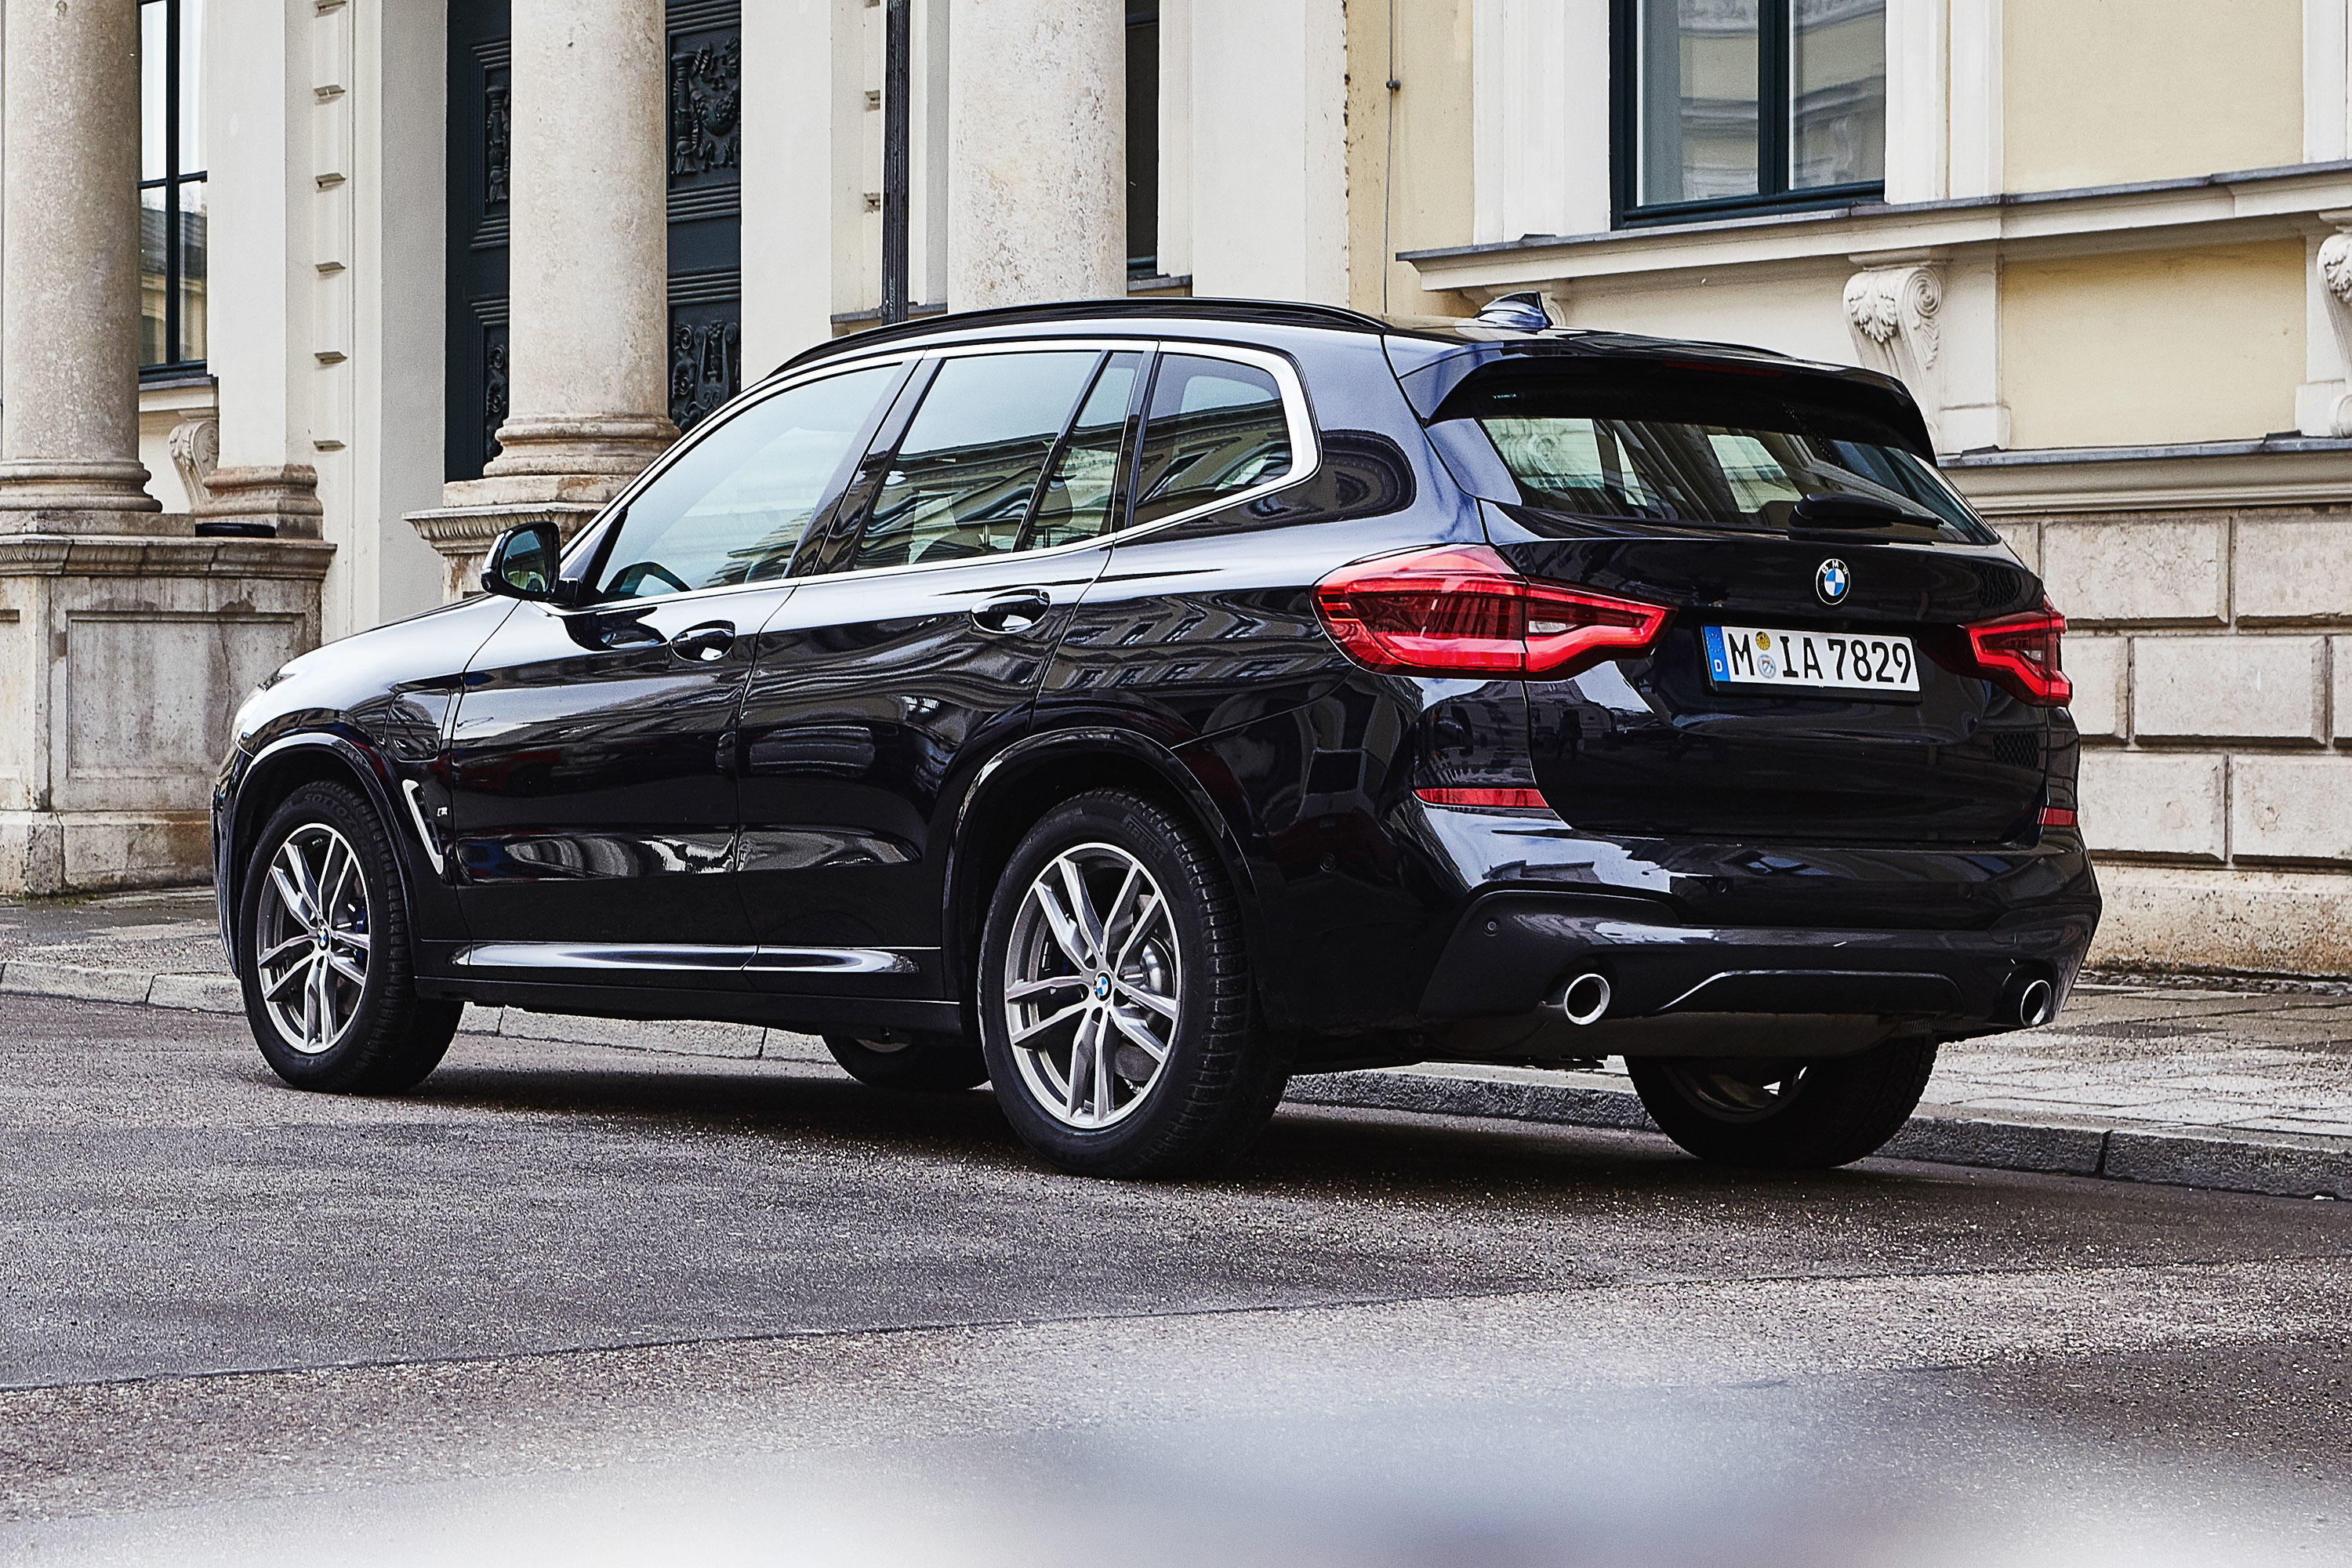 2020 BMW X3 xDrive30e first drive review: A plug-in SUV with no shortage of sport - Roadshow